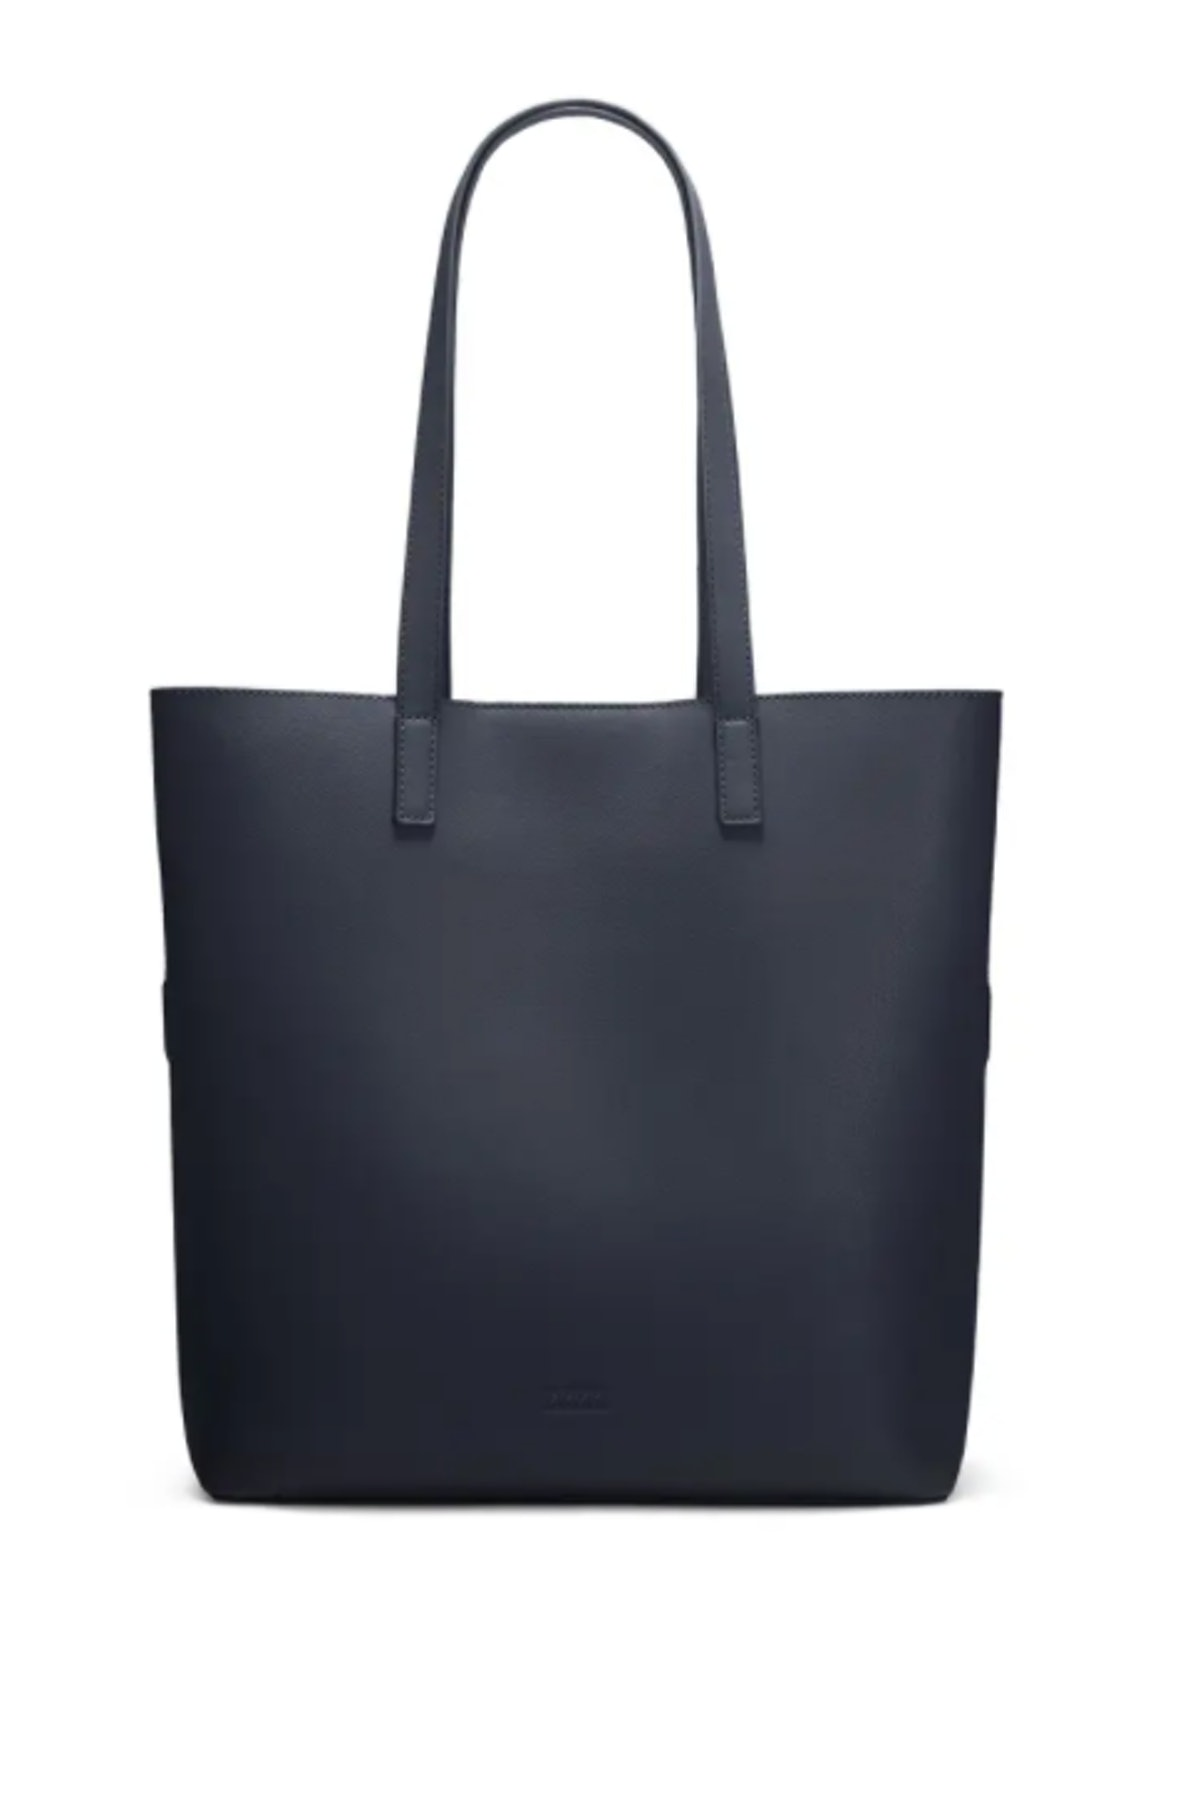 AWAY's Longitude Tote in navy leather that can hold a laptop.